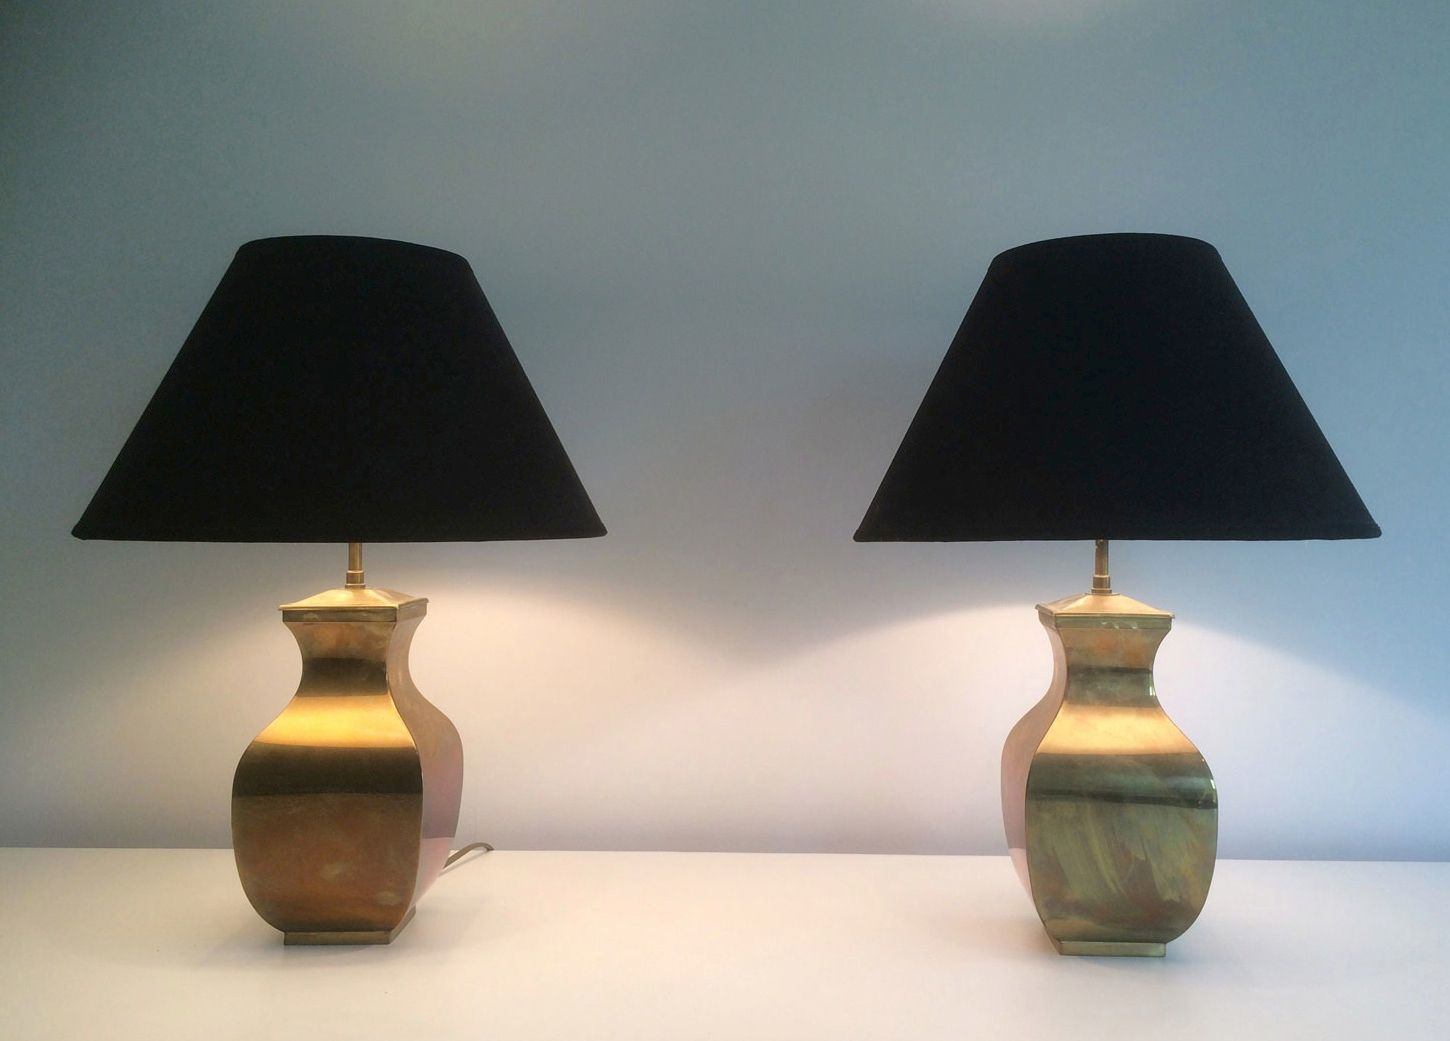 Vintage Brass Table Lamps 1970s Set Of 2 For Sale At Pamono